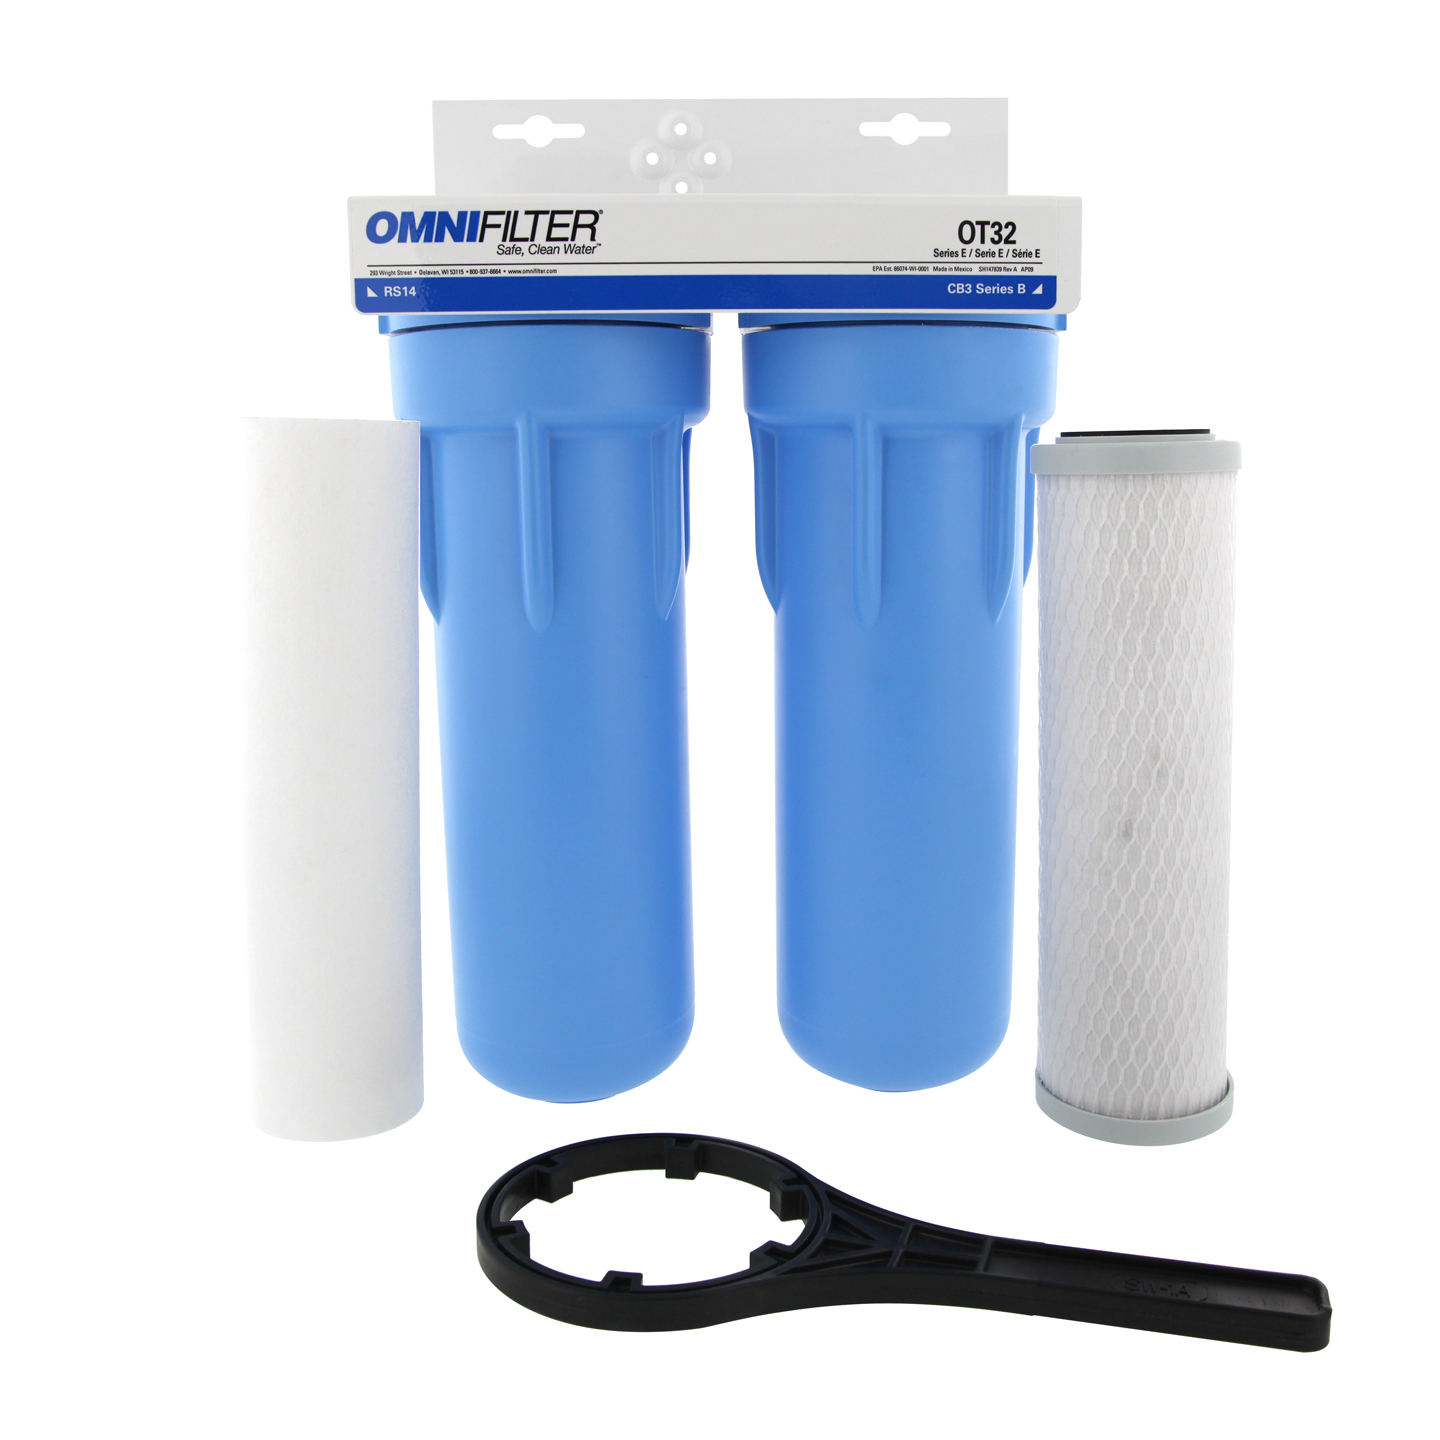 Omnifilter Ot32 S 05 Whole House 2 Step Undersink Water